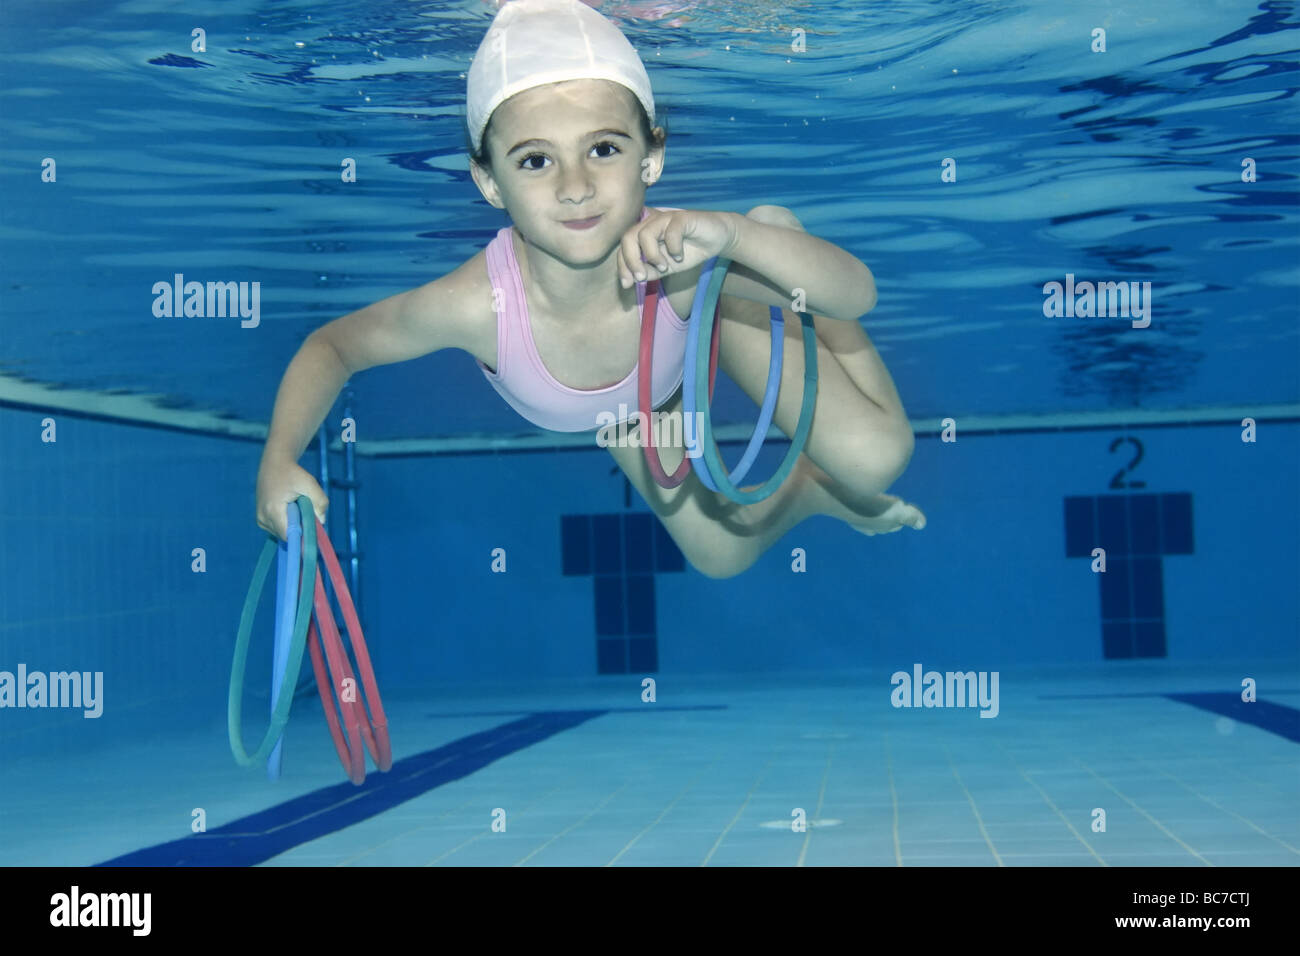 Underwater picture of a girl swimming and playing with toys Stock Photo